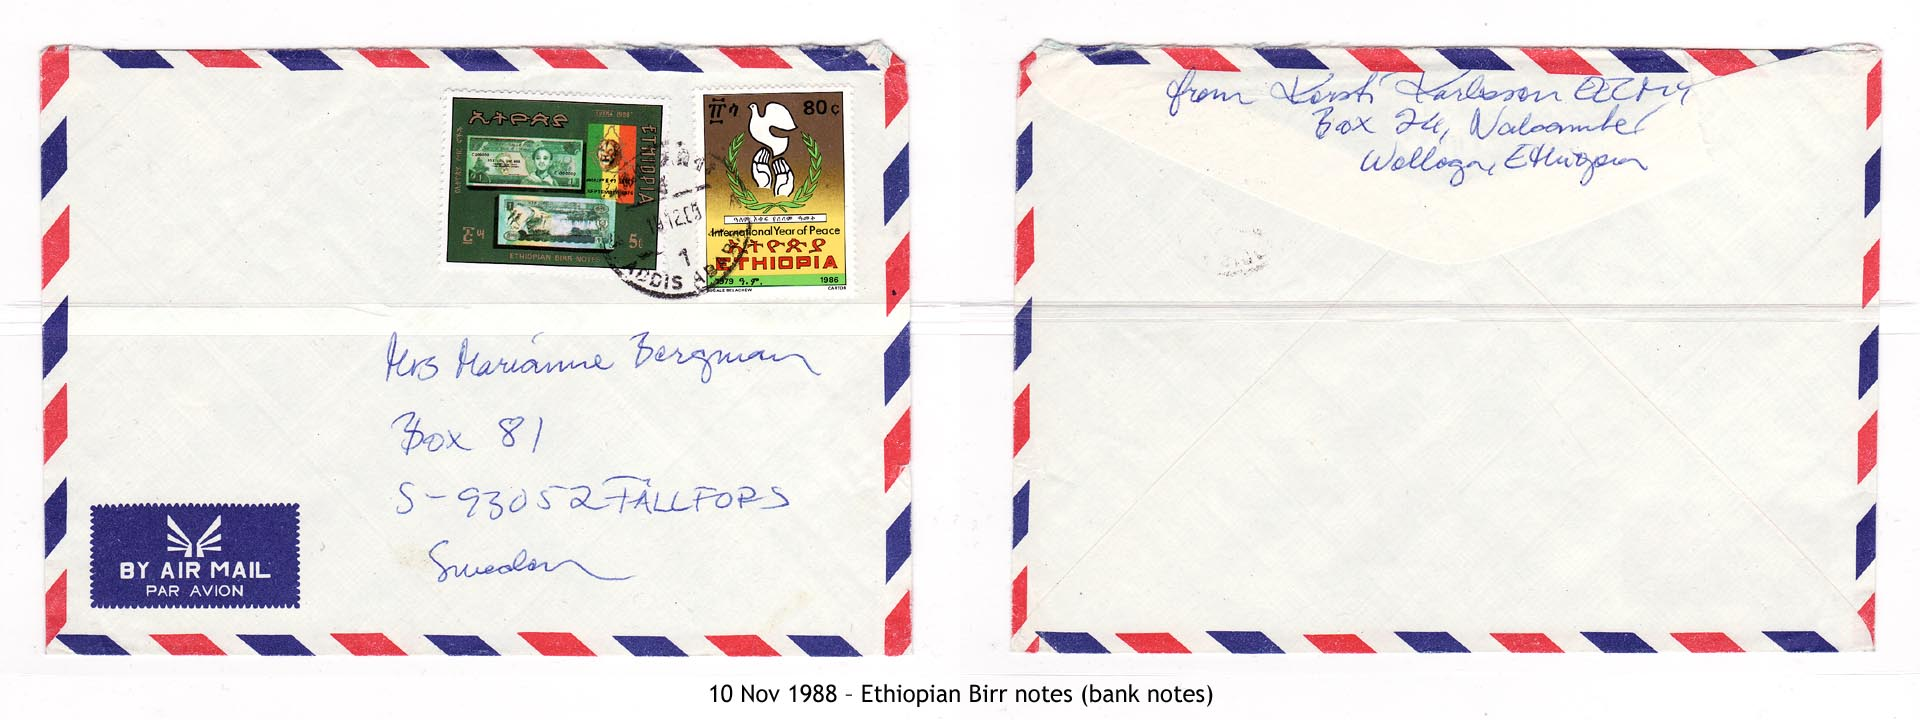 19881110 – Ethiopian Birr notes (bank notes)